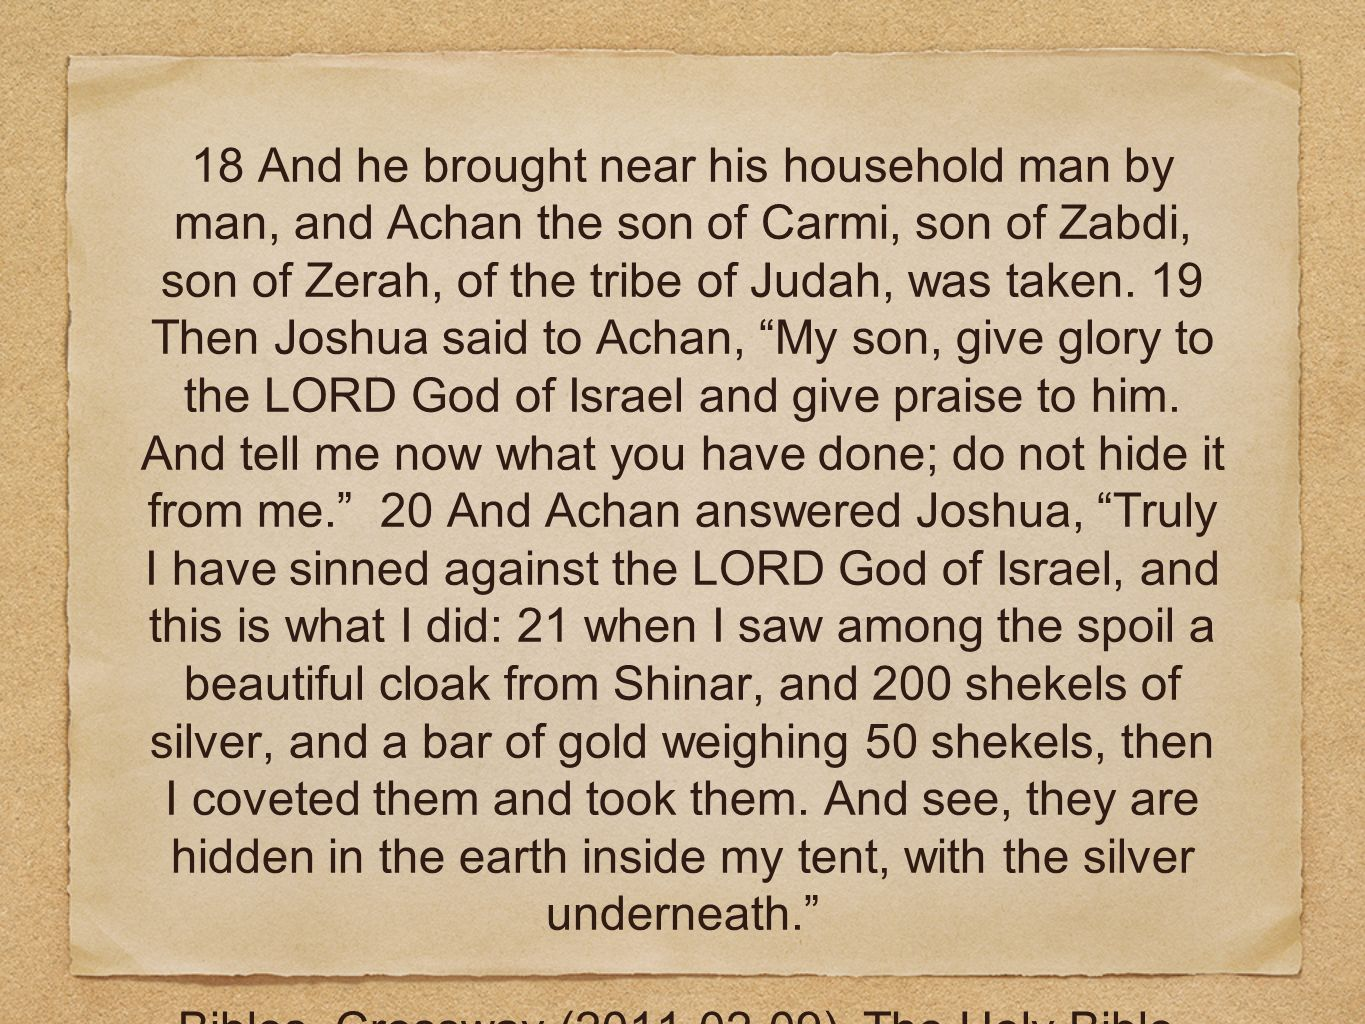 18 And he brought near his household man by man, and Achan the son of Carmi, son of Zabdi, son of Zerah, of the tribe of Judah, was taken. 19 Then Joshua said to Achan, My son, give glory to the LORD God of Israel and give praise to him. And tell me now what you have done; do not hide it from me. 20 And Achan answered Joshua, Truly I have sinned against the LORD God of Israel, and this is what I did: 21 when I saw among the spoil a beautiful cloak from Shinar, and 200 shekels of silver, and a bar of gold weighing 50 shekels, then I coveted them and took them. And see, they are hidden in the earth inside my tent, with the silver underneath.